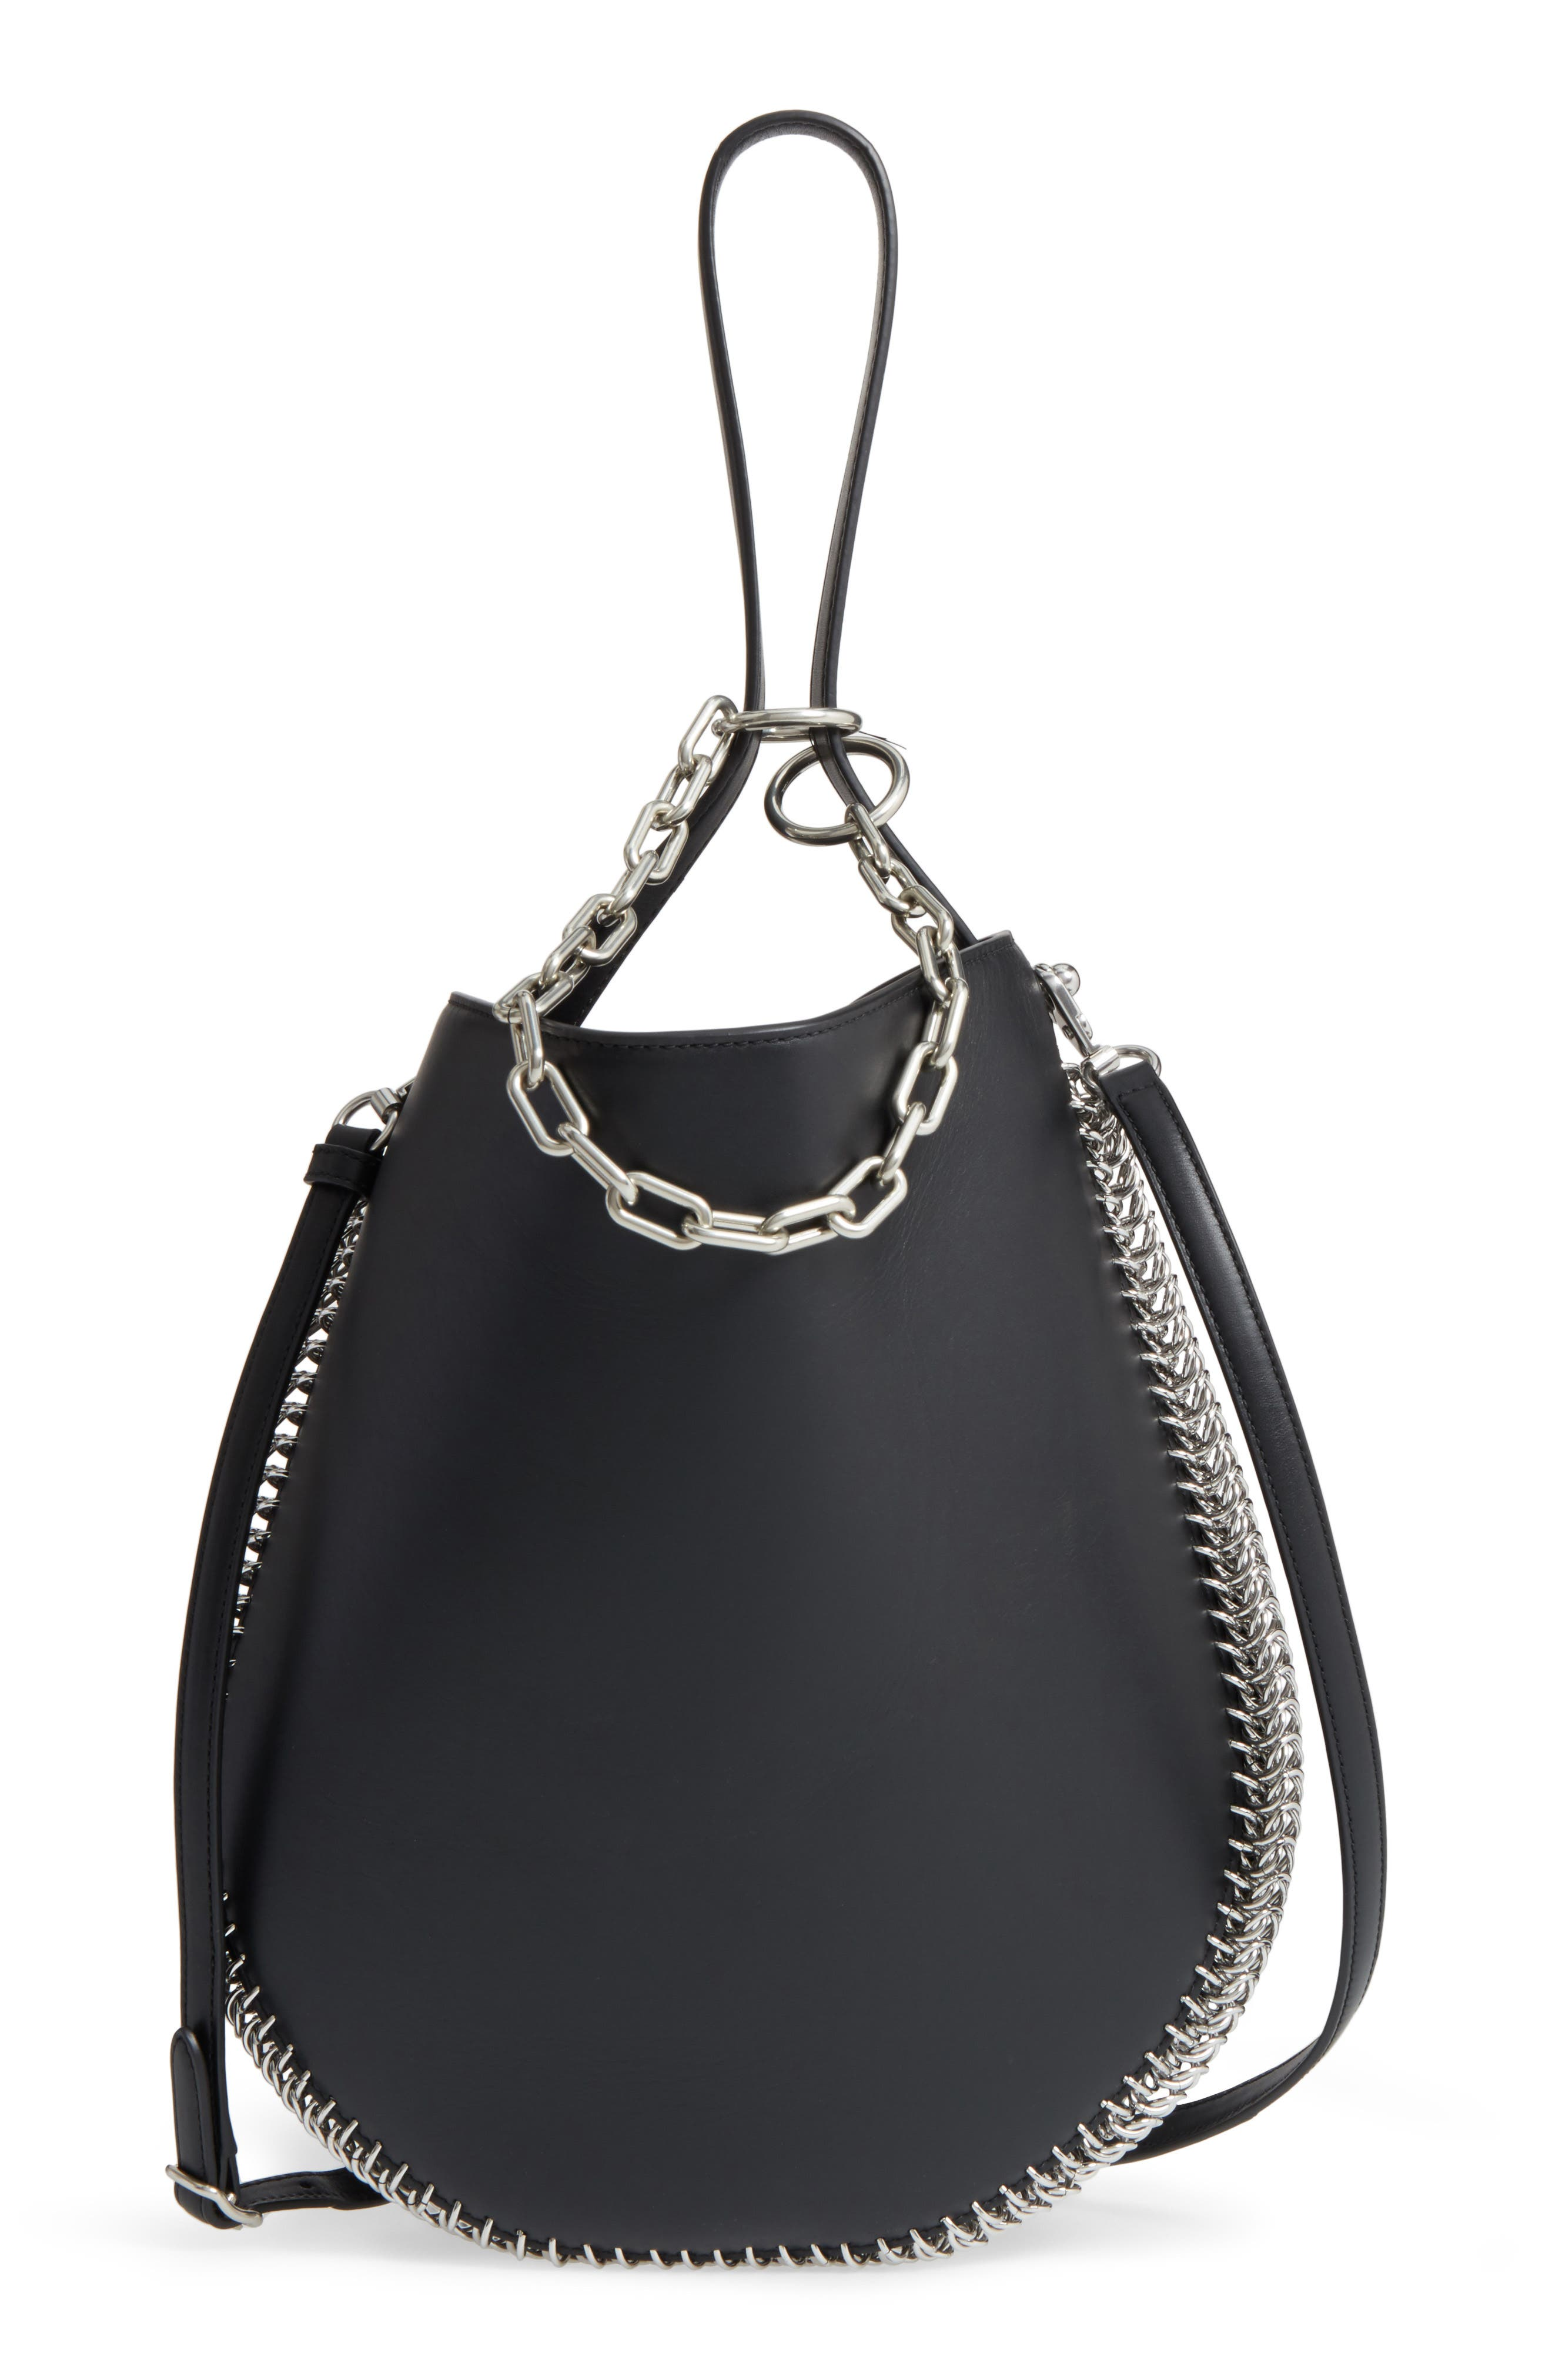 Alexander Wang Roxy Studded Leather Hobo Bag